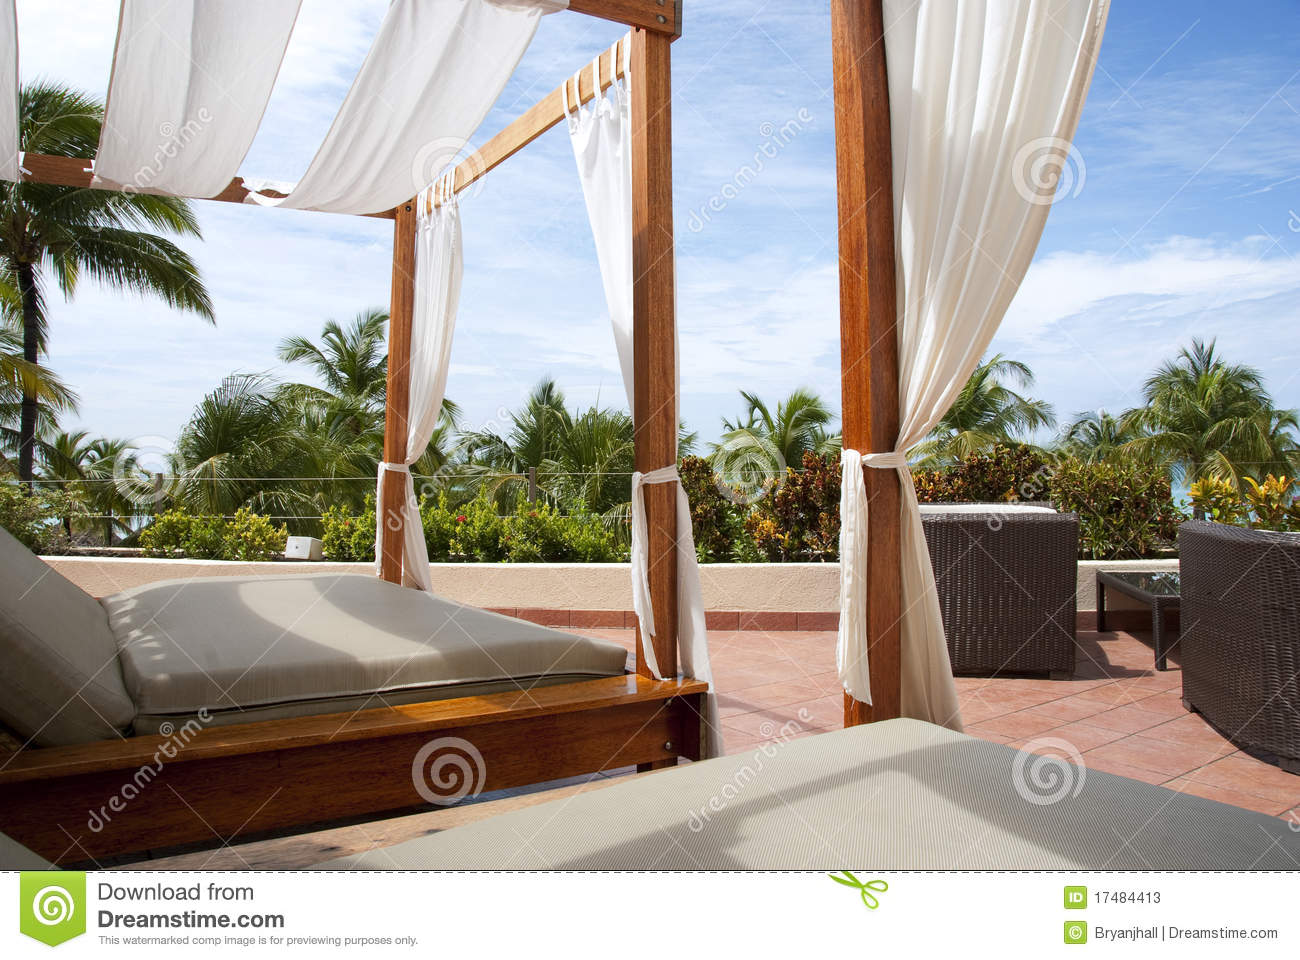 Outdoor Cabana Beds In The Tropics Stock Image  Image of